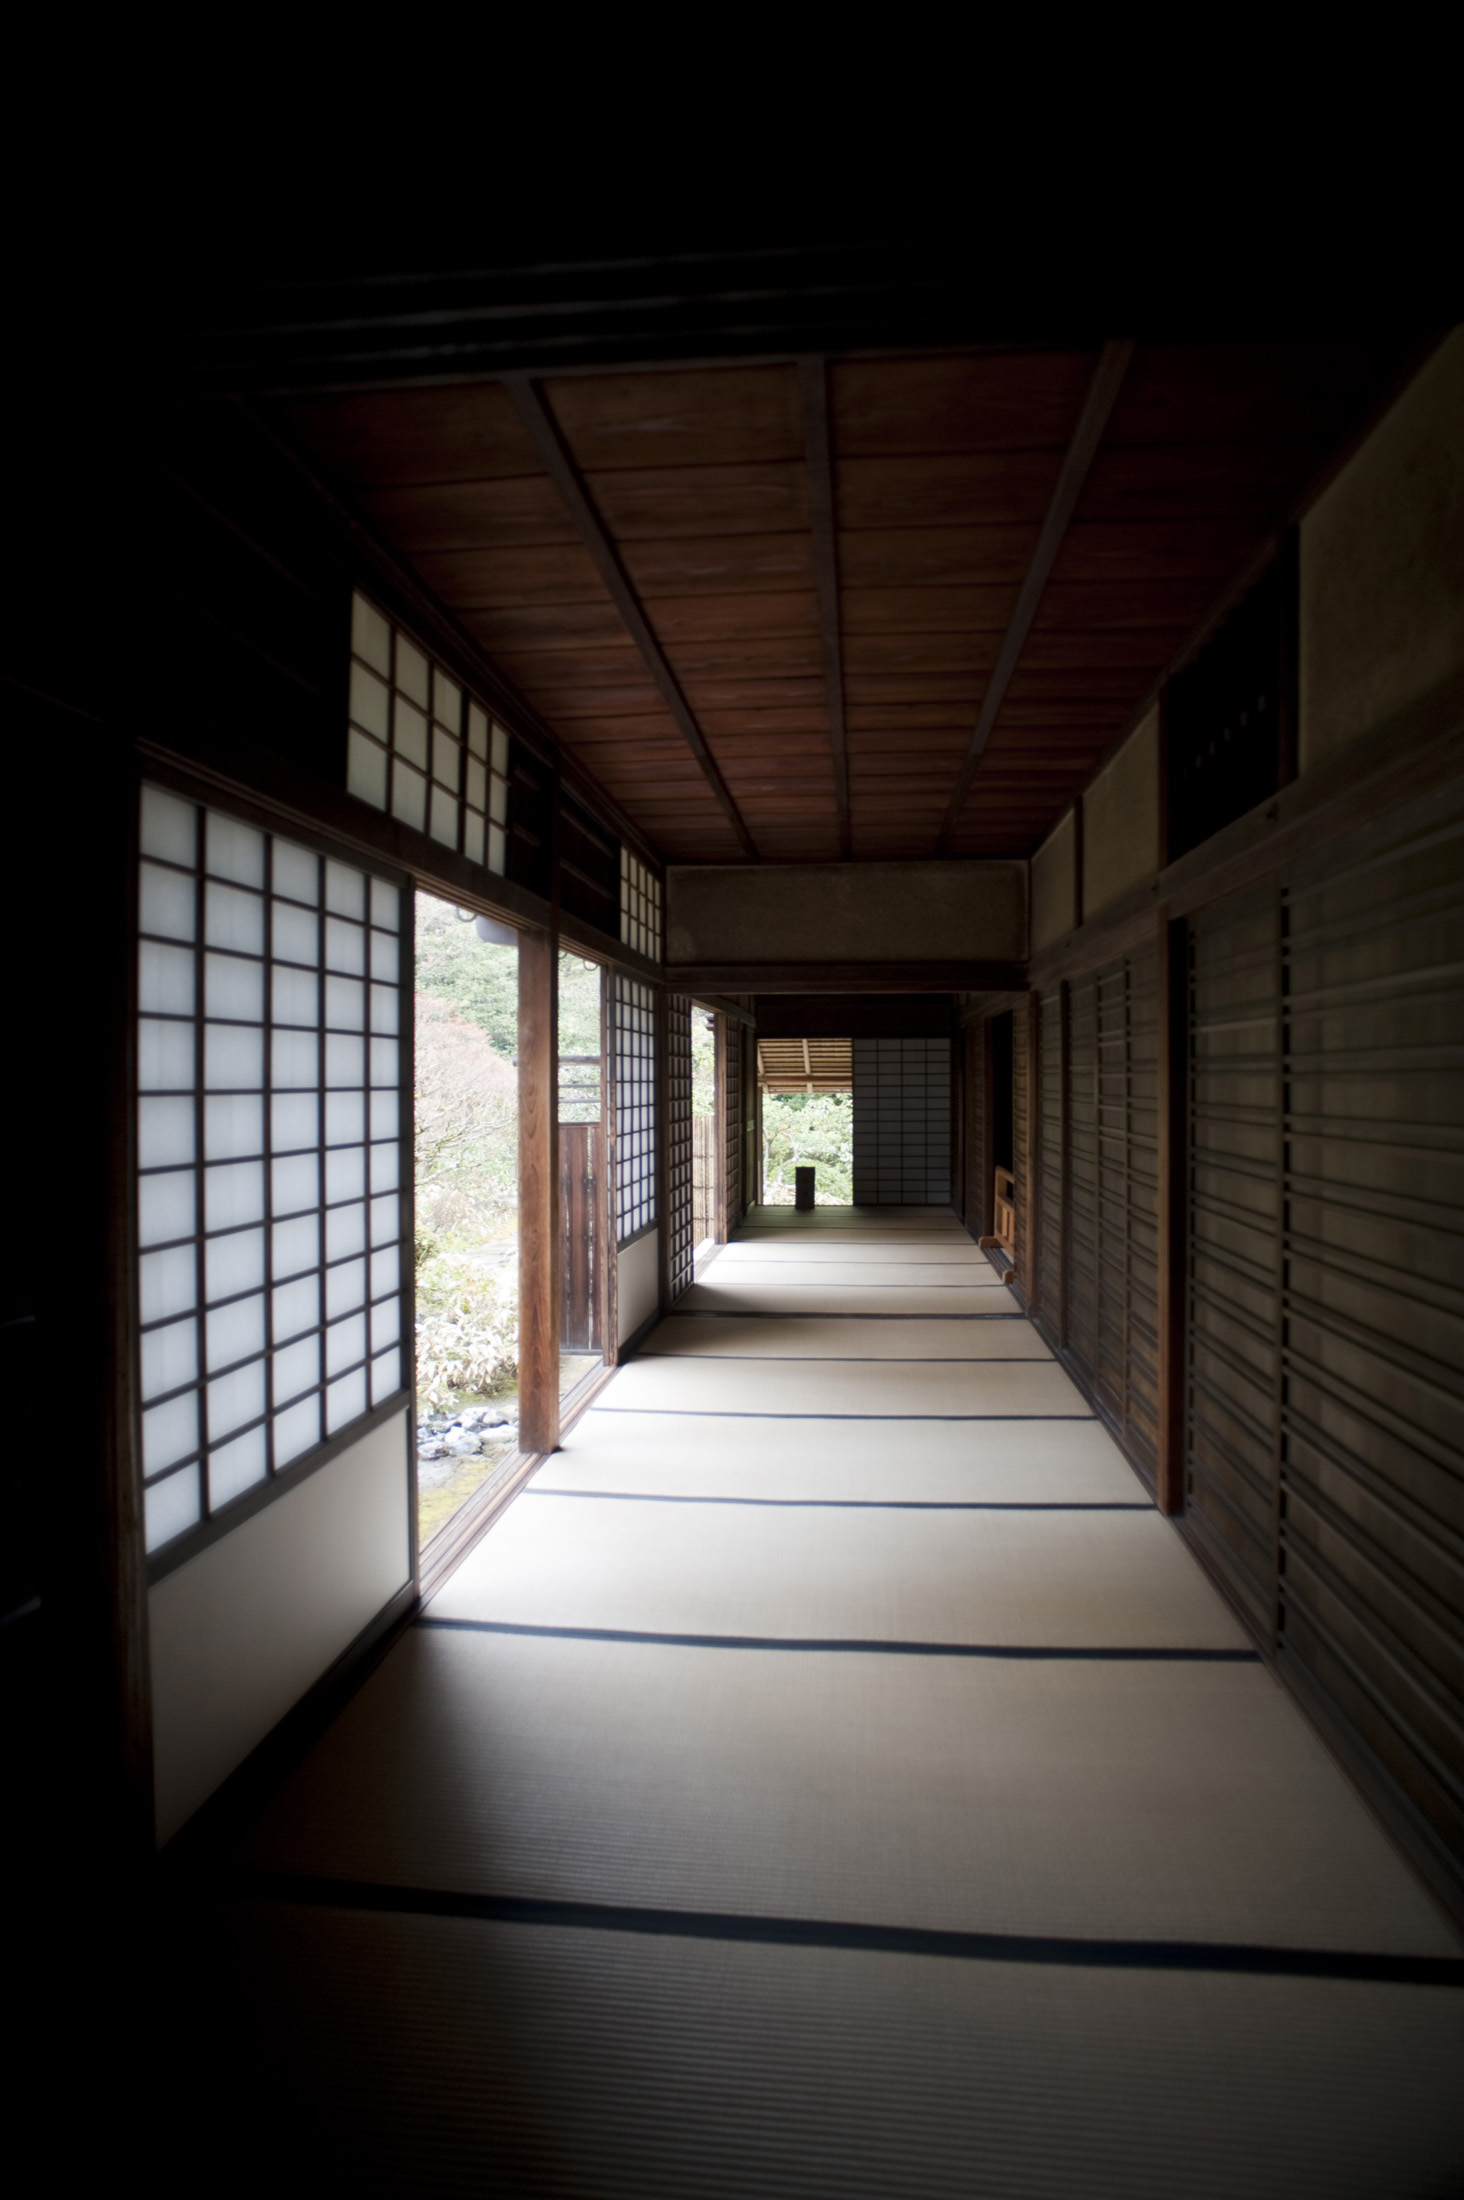 Interior of the Koto-in sub temple of Daitoku-ji in Kyoto, Japan